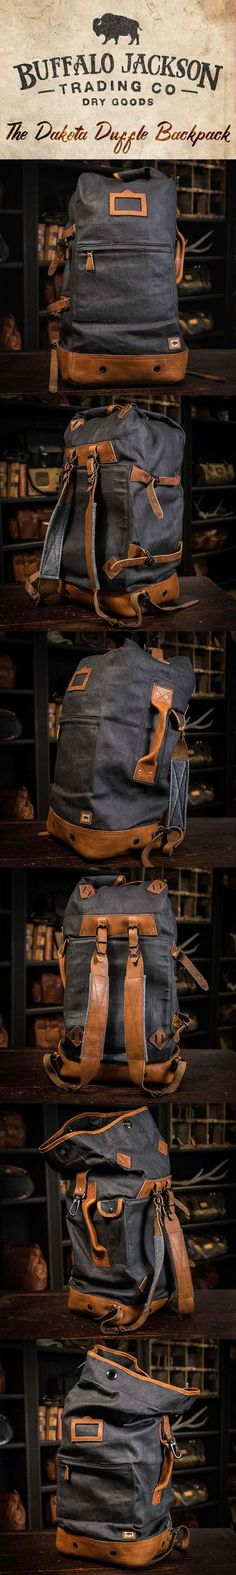 Crafted of waxed canvas and distressed full grain leather, this men's vintage military duffle backpack was built to honor the memory of good men and good days. Fill it with your sports gear or go hiking across Europe. This bag can handle it. padded leather shoulder straps   interior laptop sleeve   finest leathers and canvases